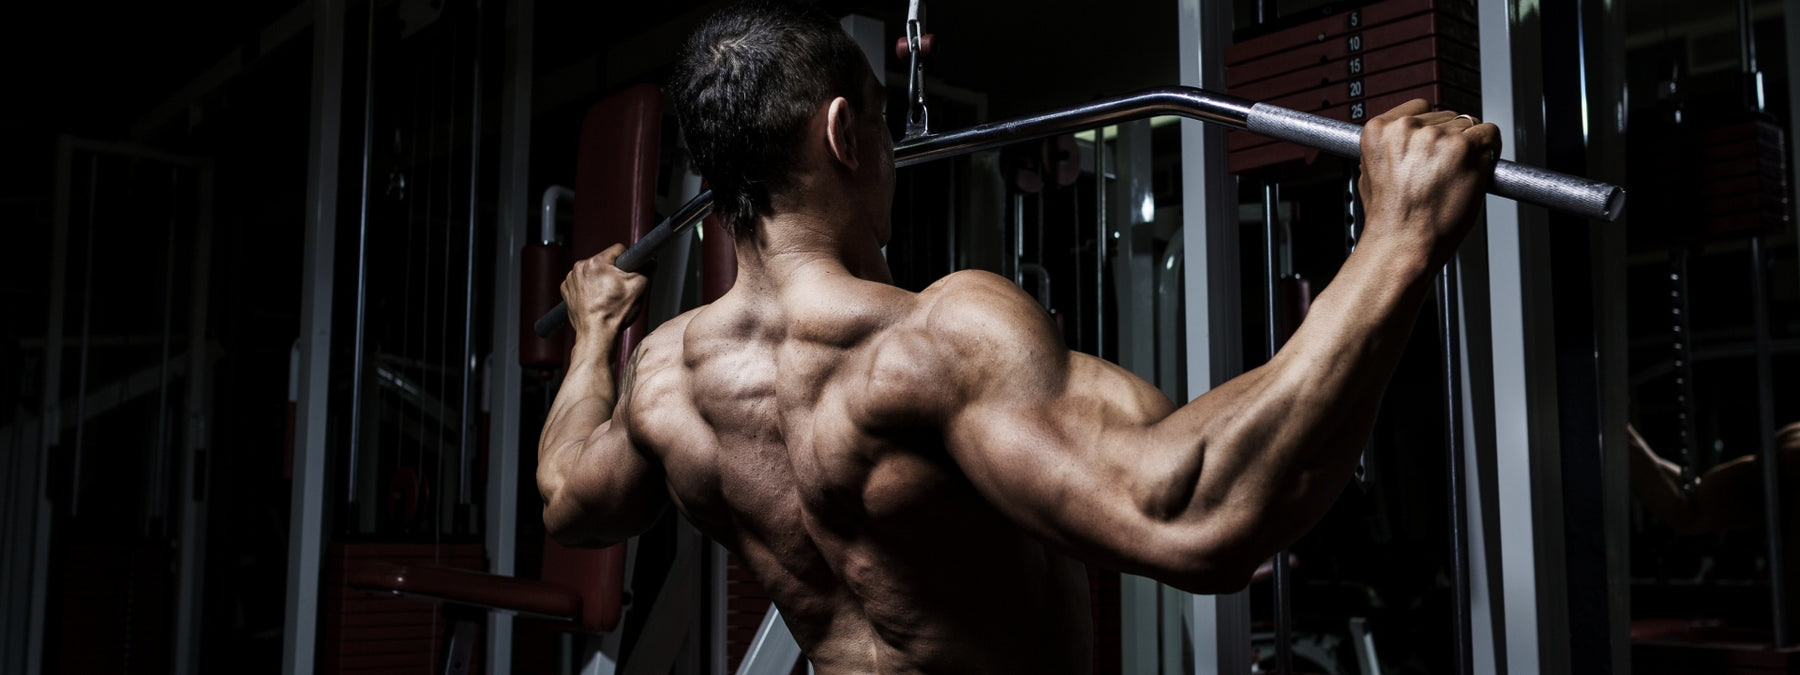 Advanced Back Training - 5 Alternative Upper Back Exercises